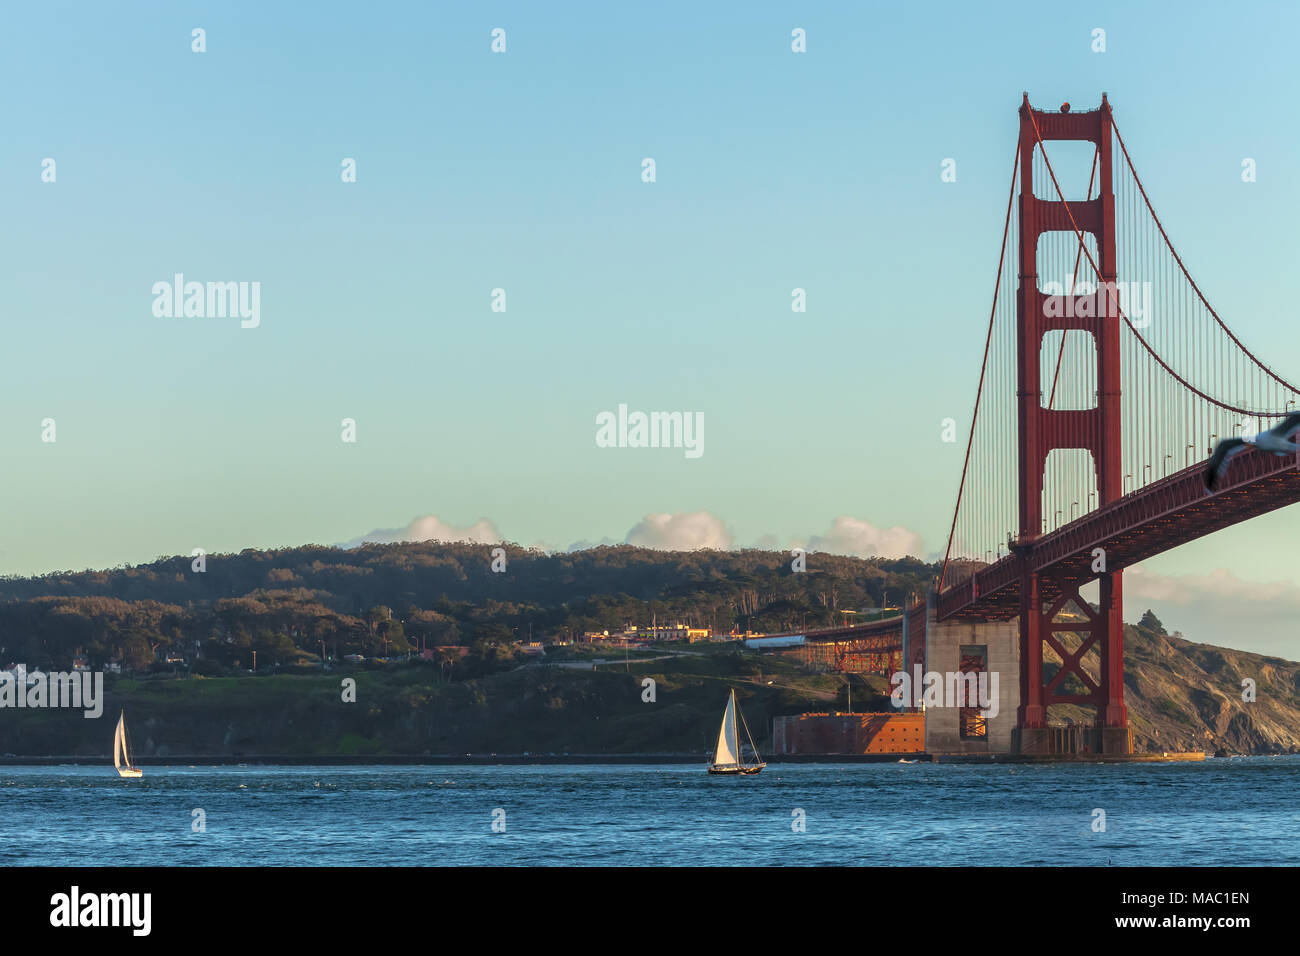 Sailboats in the San Francisco Bay, with the Golden Gate Bridge in the background, San Francisco, California, United States - Stock Image